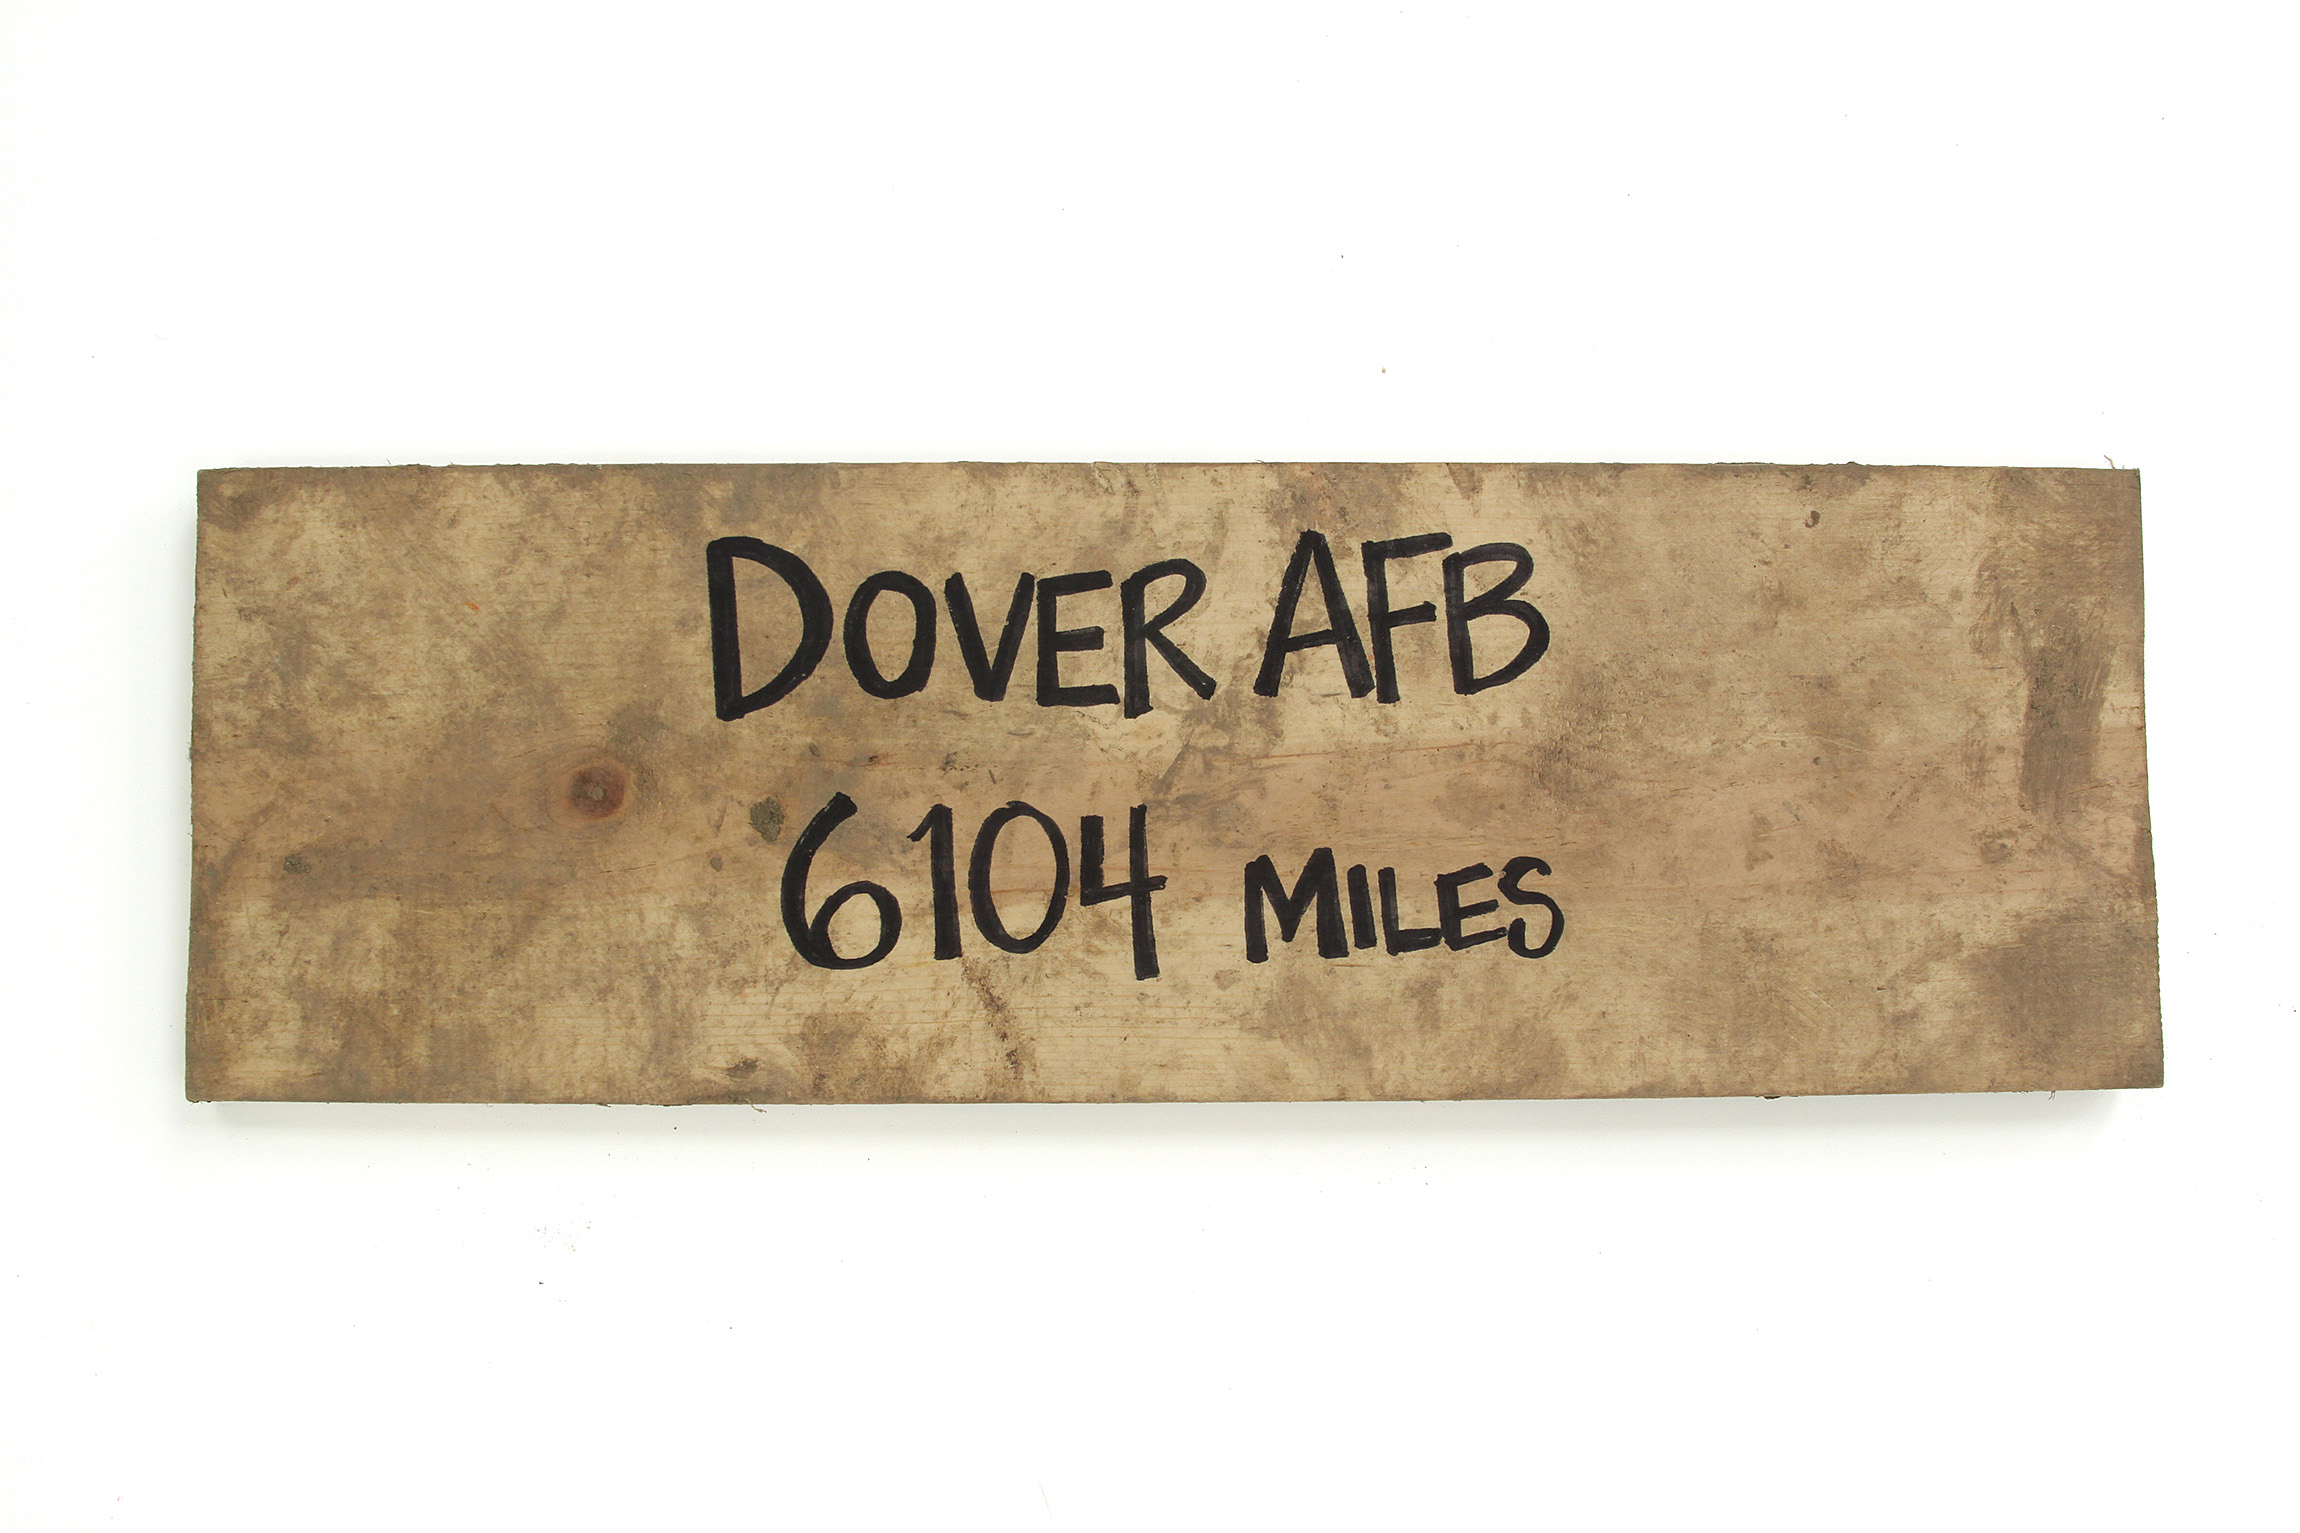 single women over 50 in dover afb Dover air force base or dover afb as a training airfield and assumed jurisdiction over the municipal airport at dover a single battered.